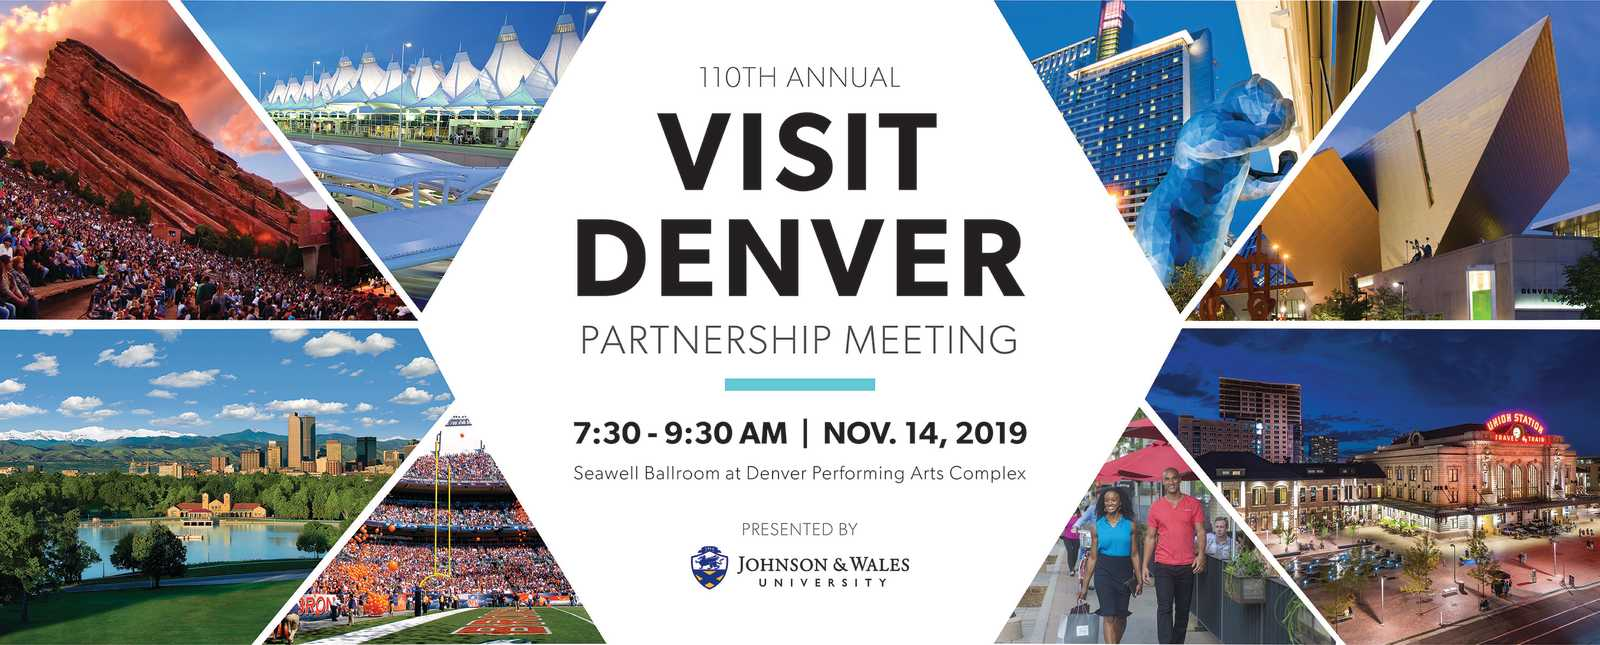 110 Annual Meeting 2019 Nov. 14 at 7:30 am